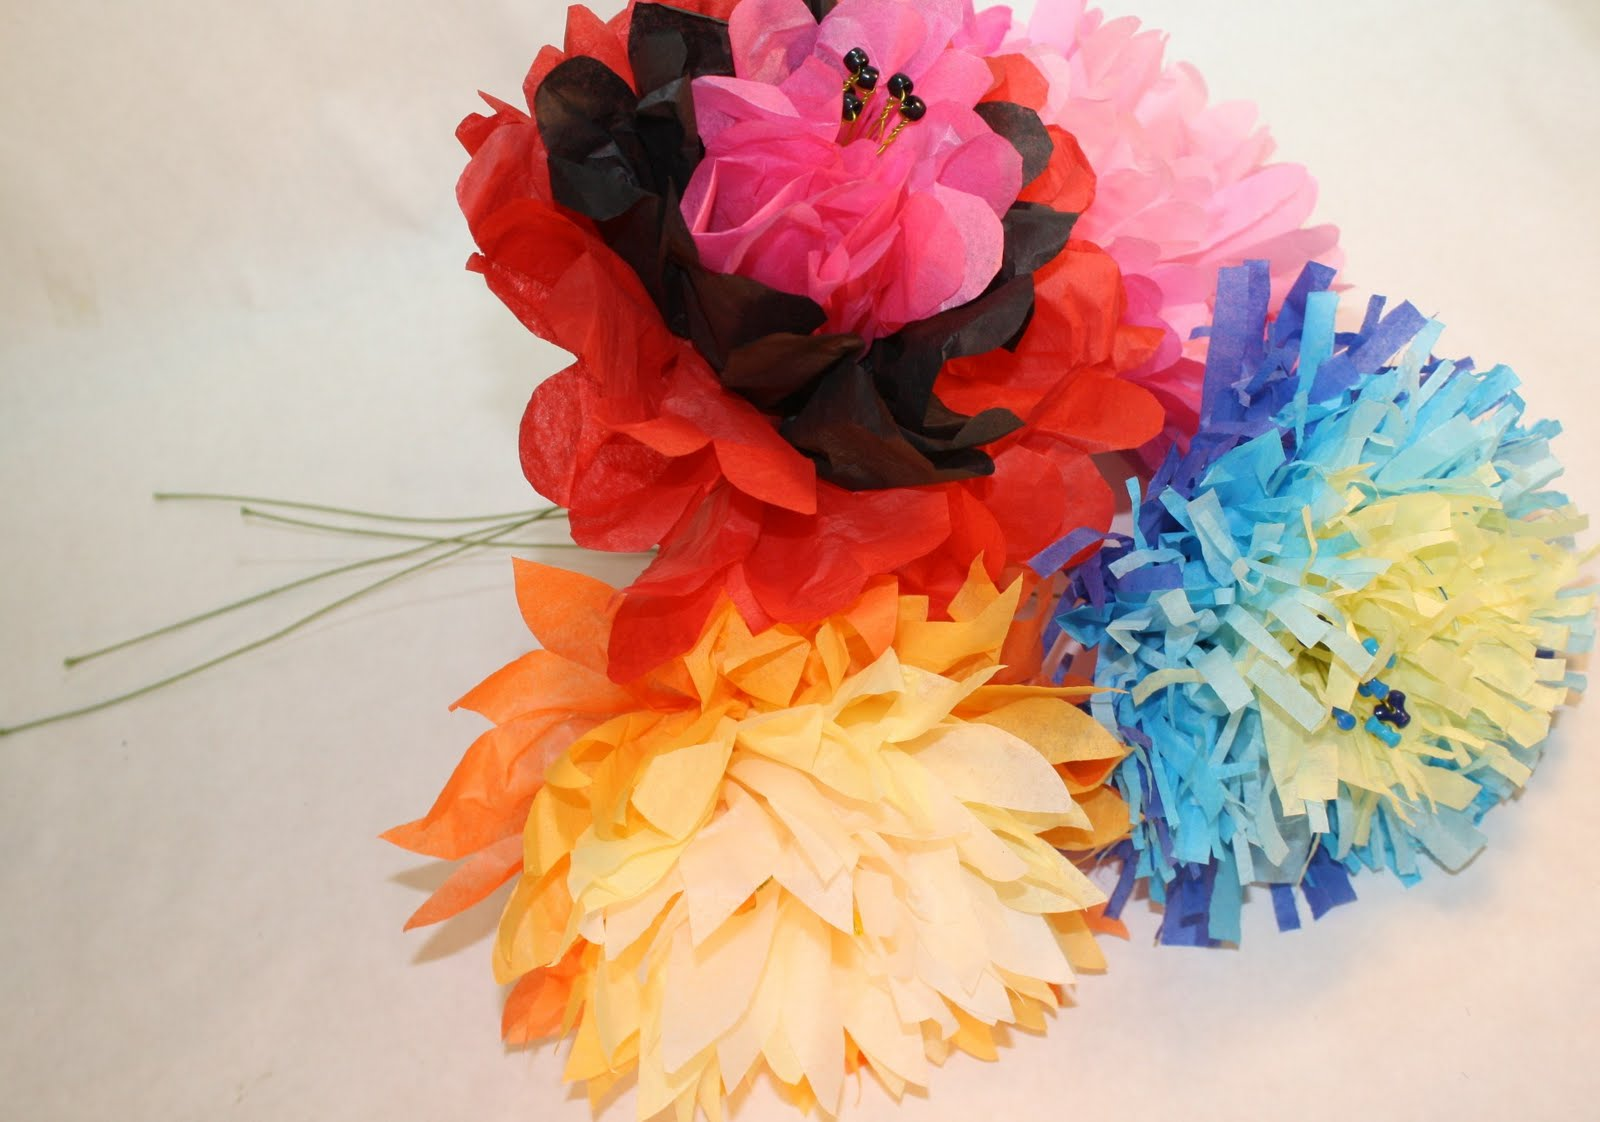 Heidi boyd flower power how to make giant tissue paper blooms flower power how to make giant tissue paper blooms mightylinksfo